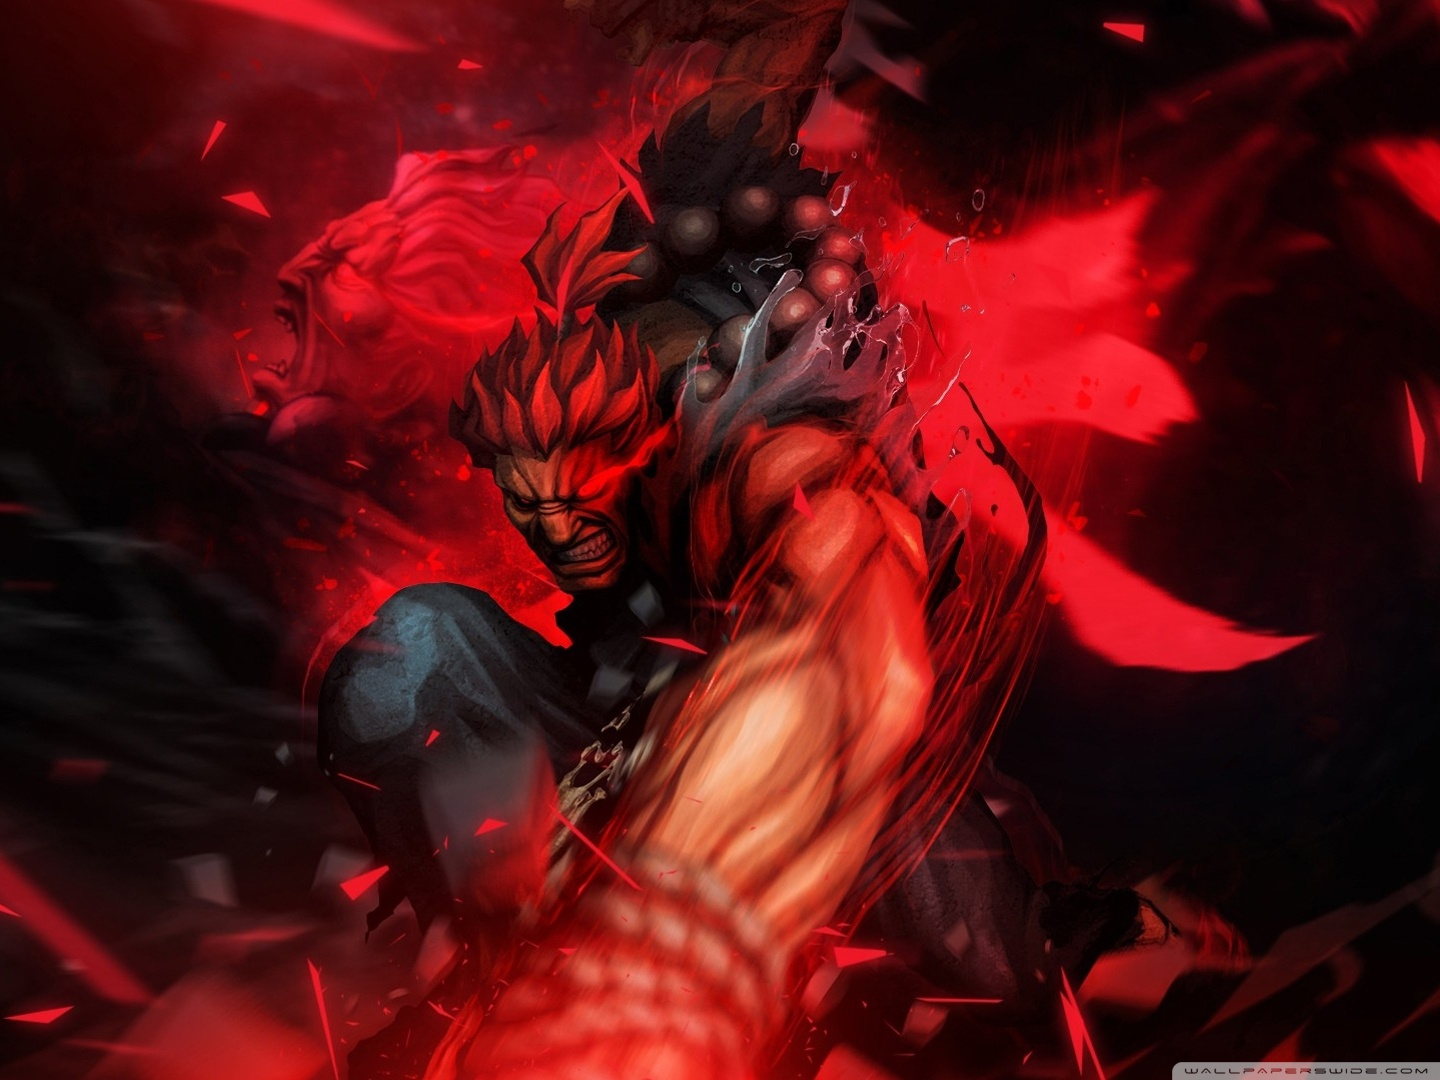 Jalan Street Fighter X Tekken Jalan Jalan Street Fighter Wallpaper 38492012 Fanpop